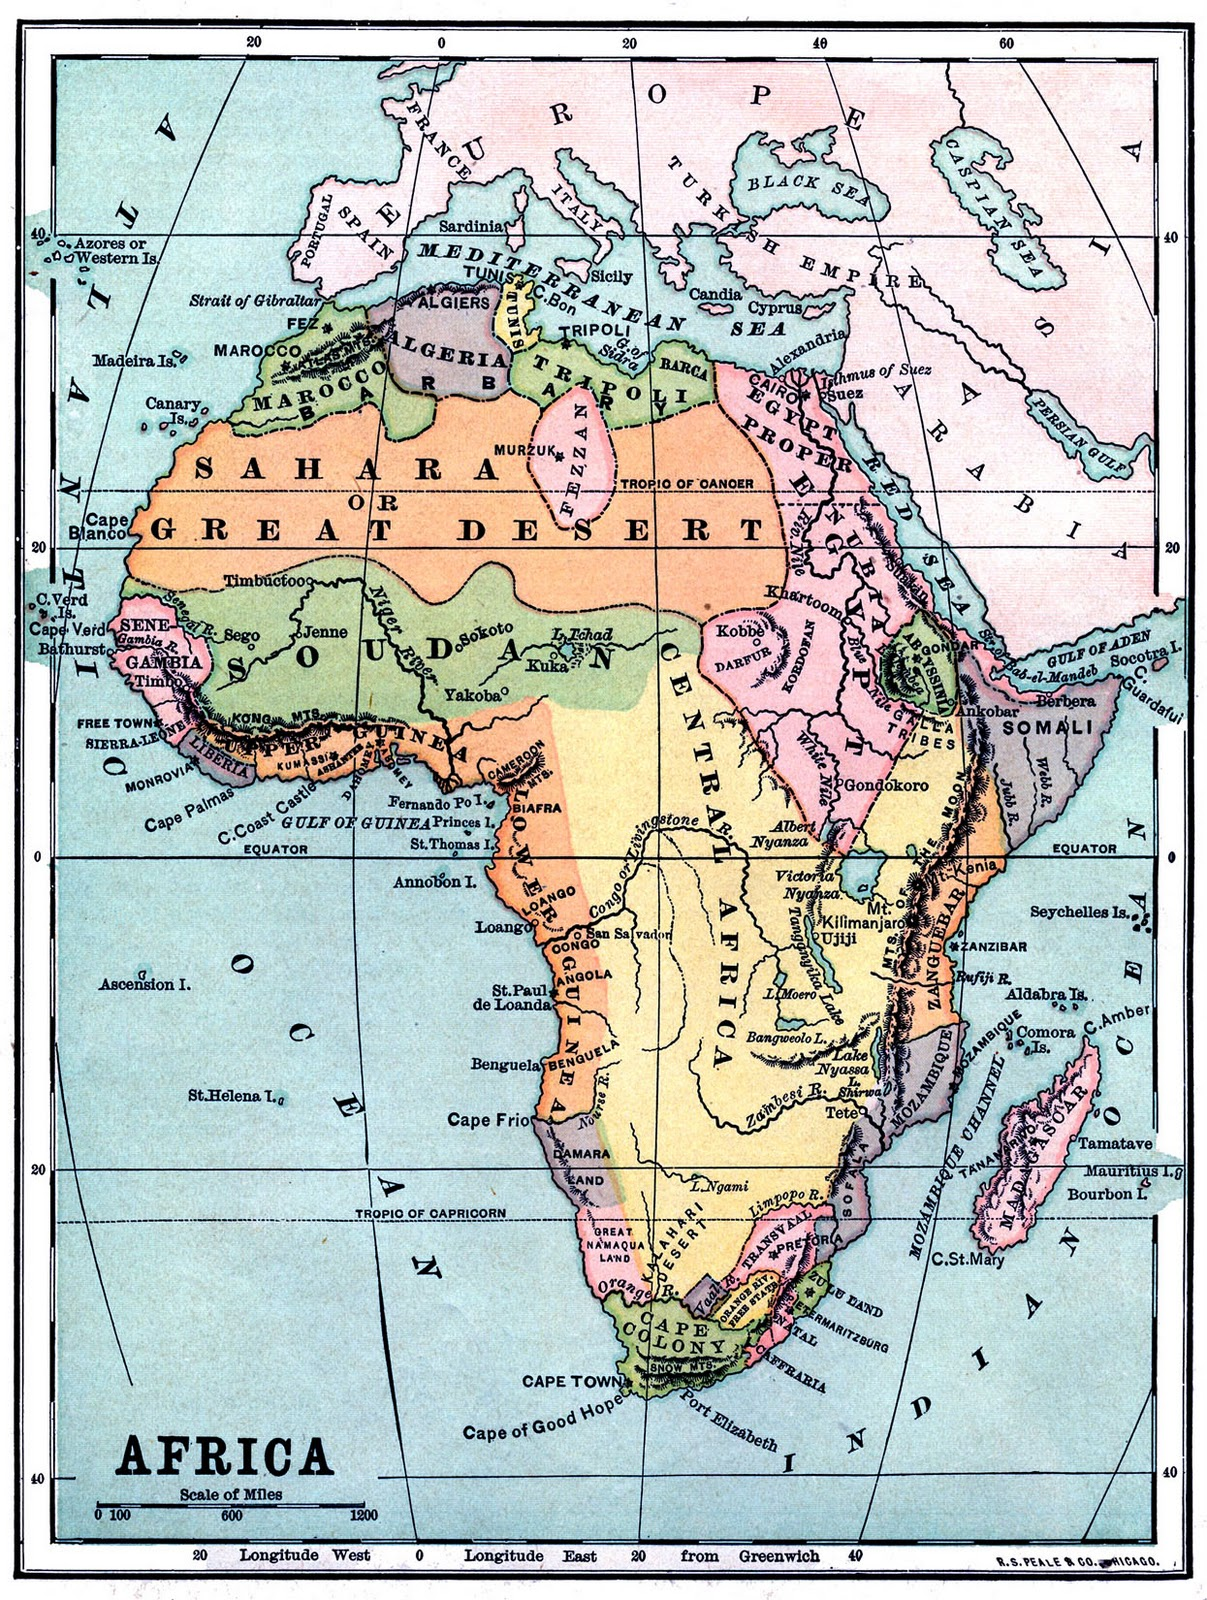 photograph regarding Printable Maps of Africa titled Immediate Artwork Printable - Basic Map of Africa - The Graphics